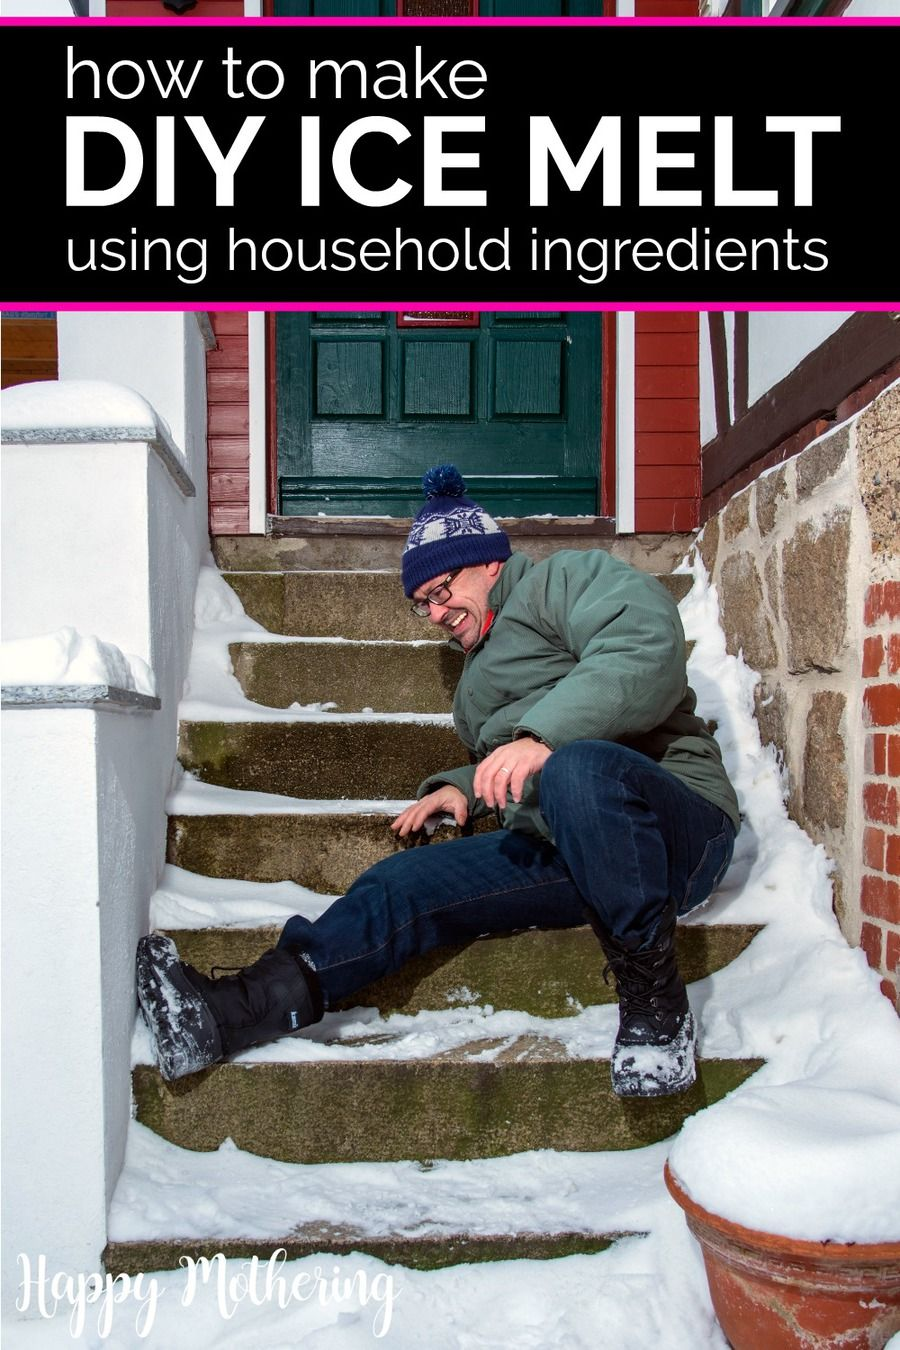 How To Get Rid Of Packed Snow On Driveway